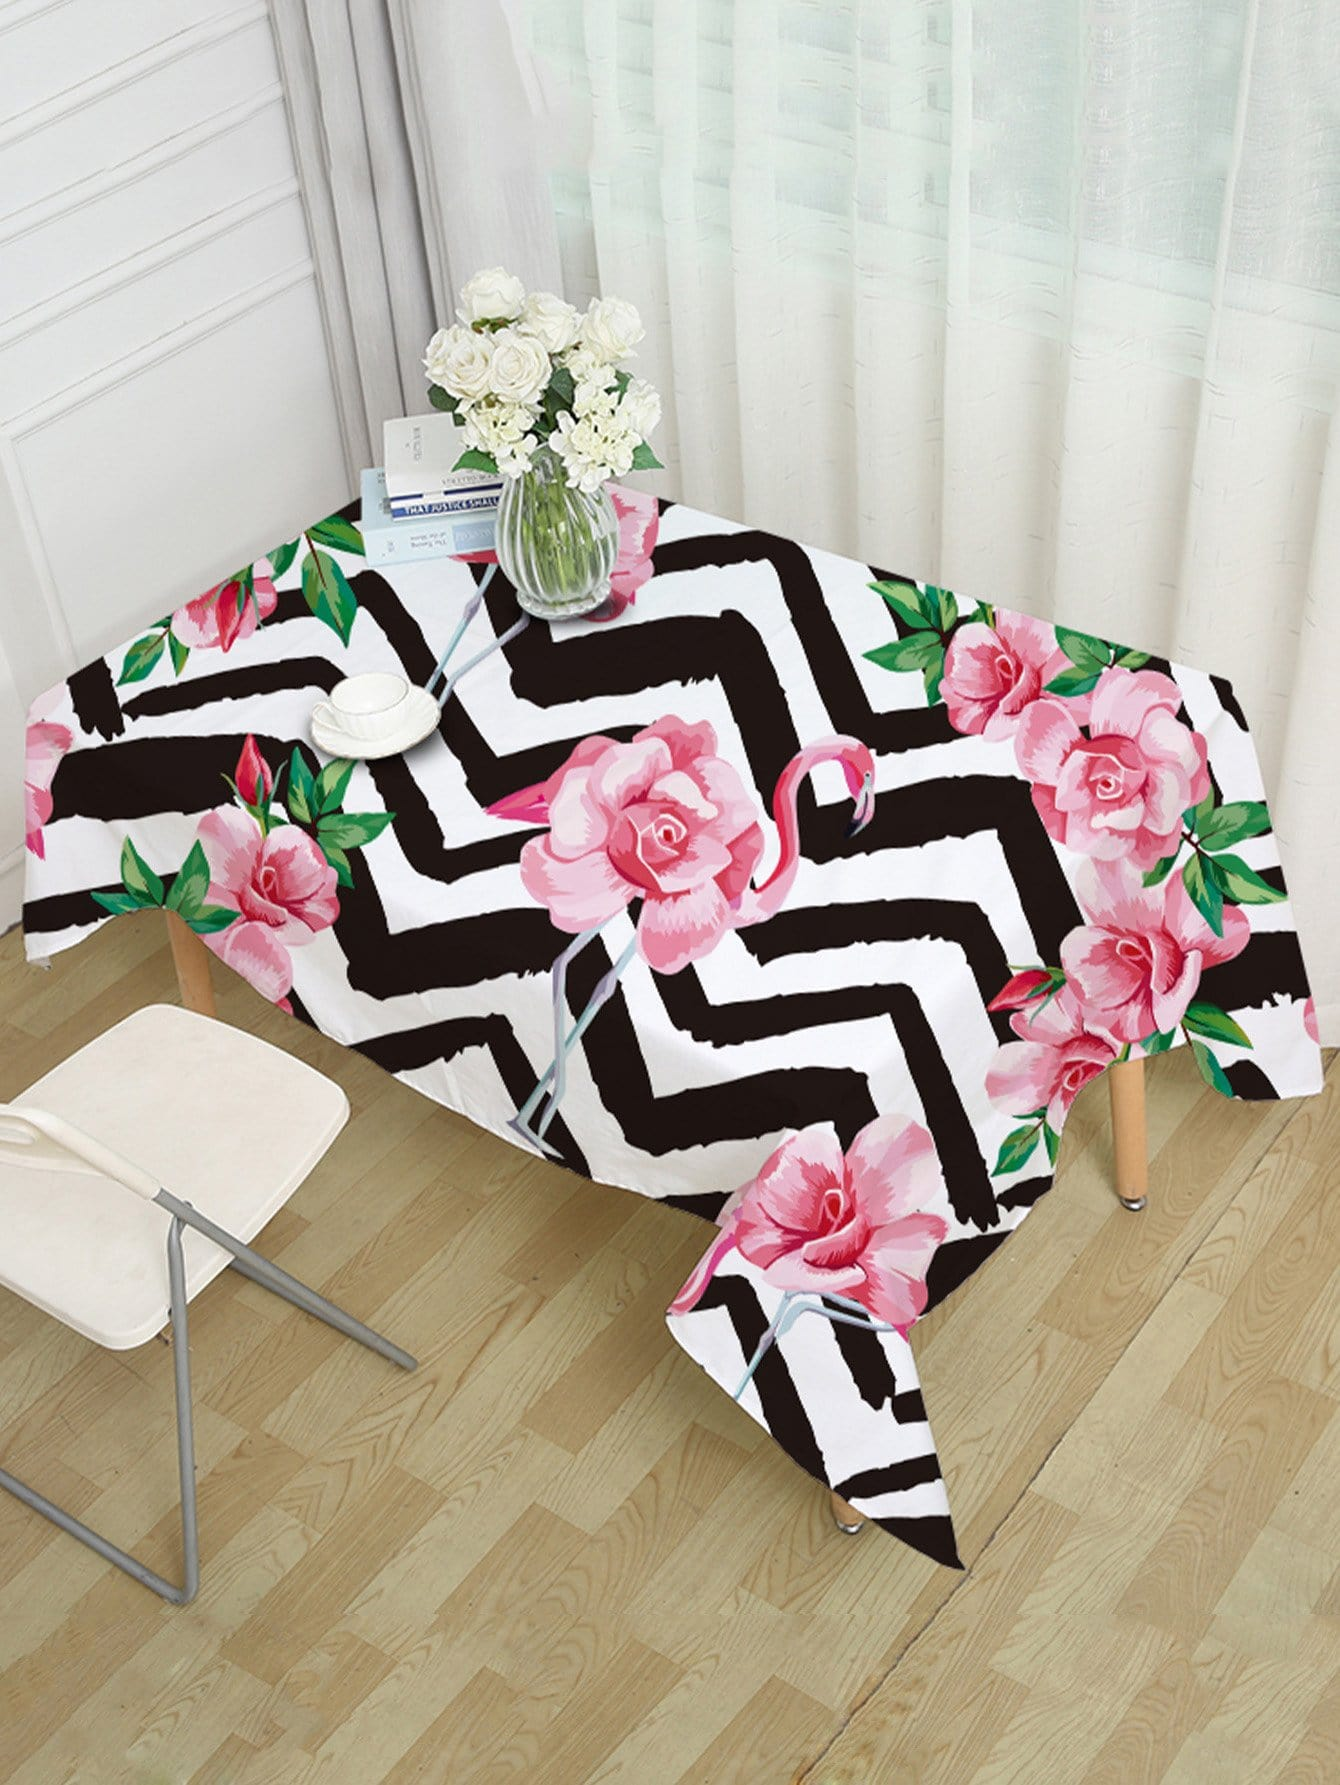 Floral & Flamingos Print Table Cloth